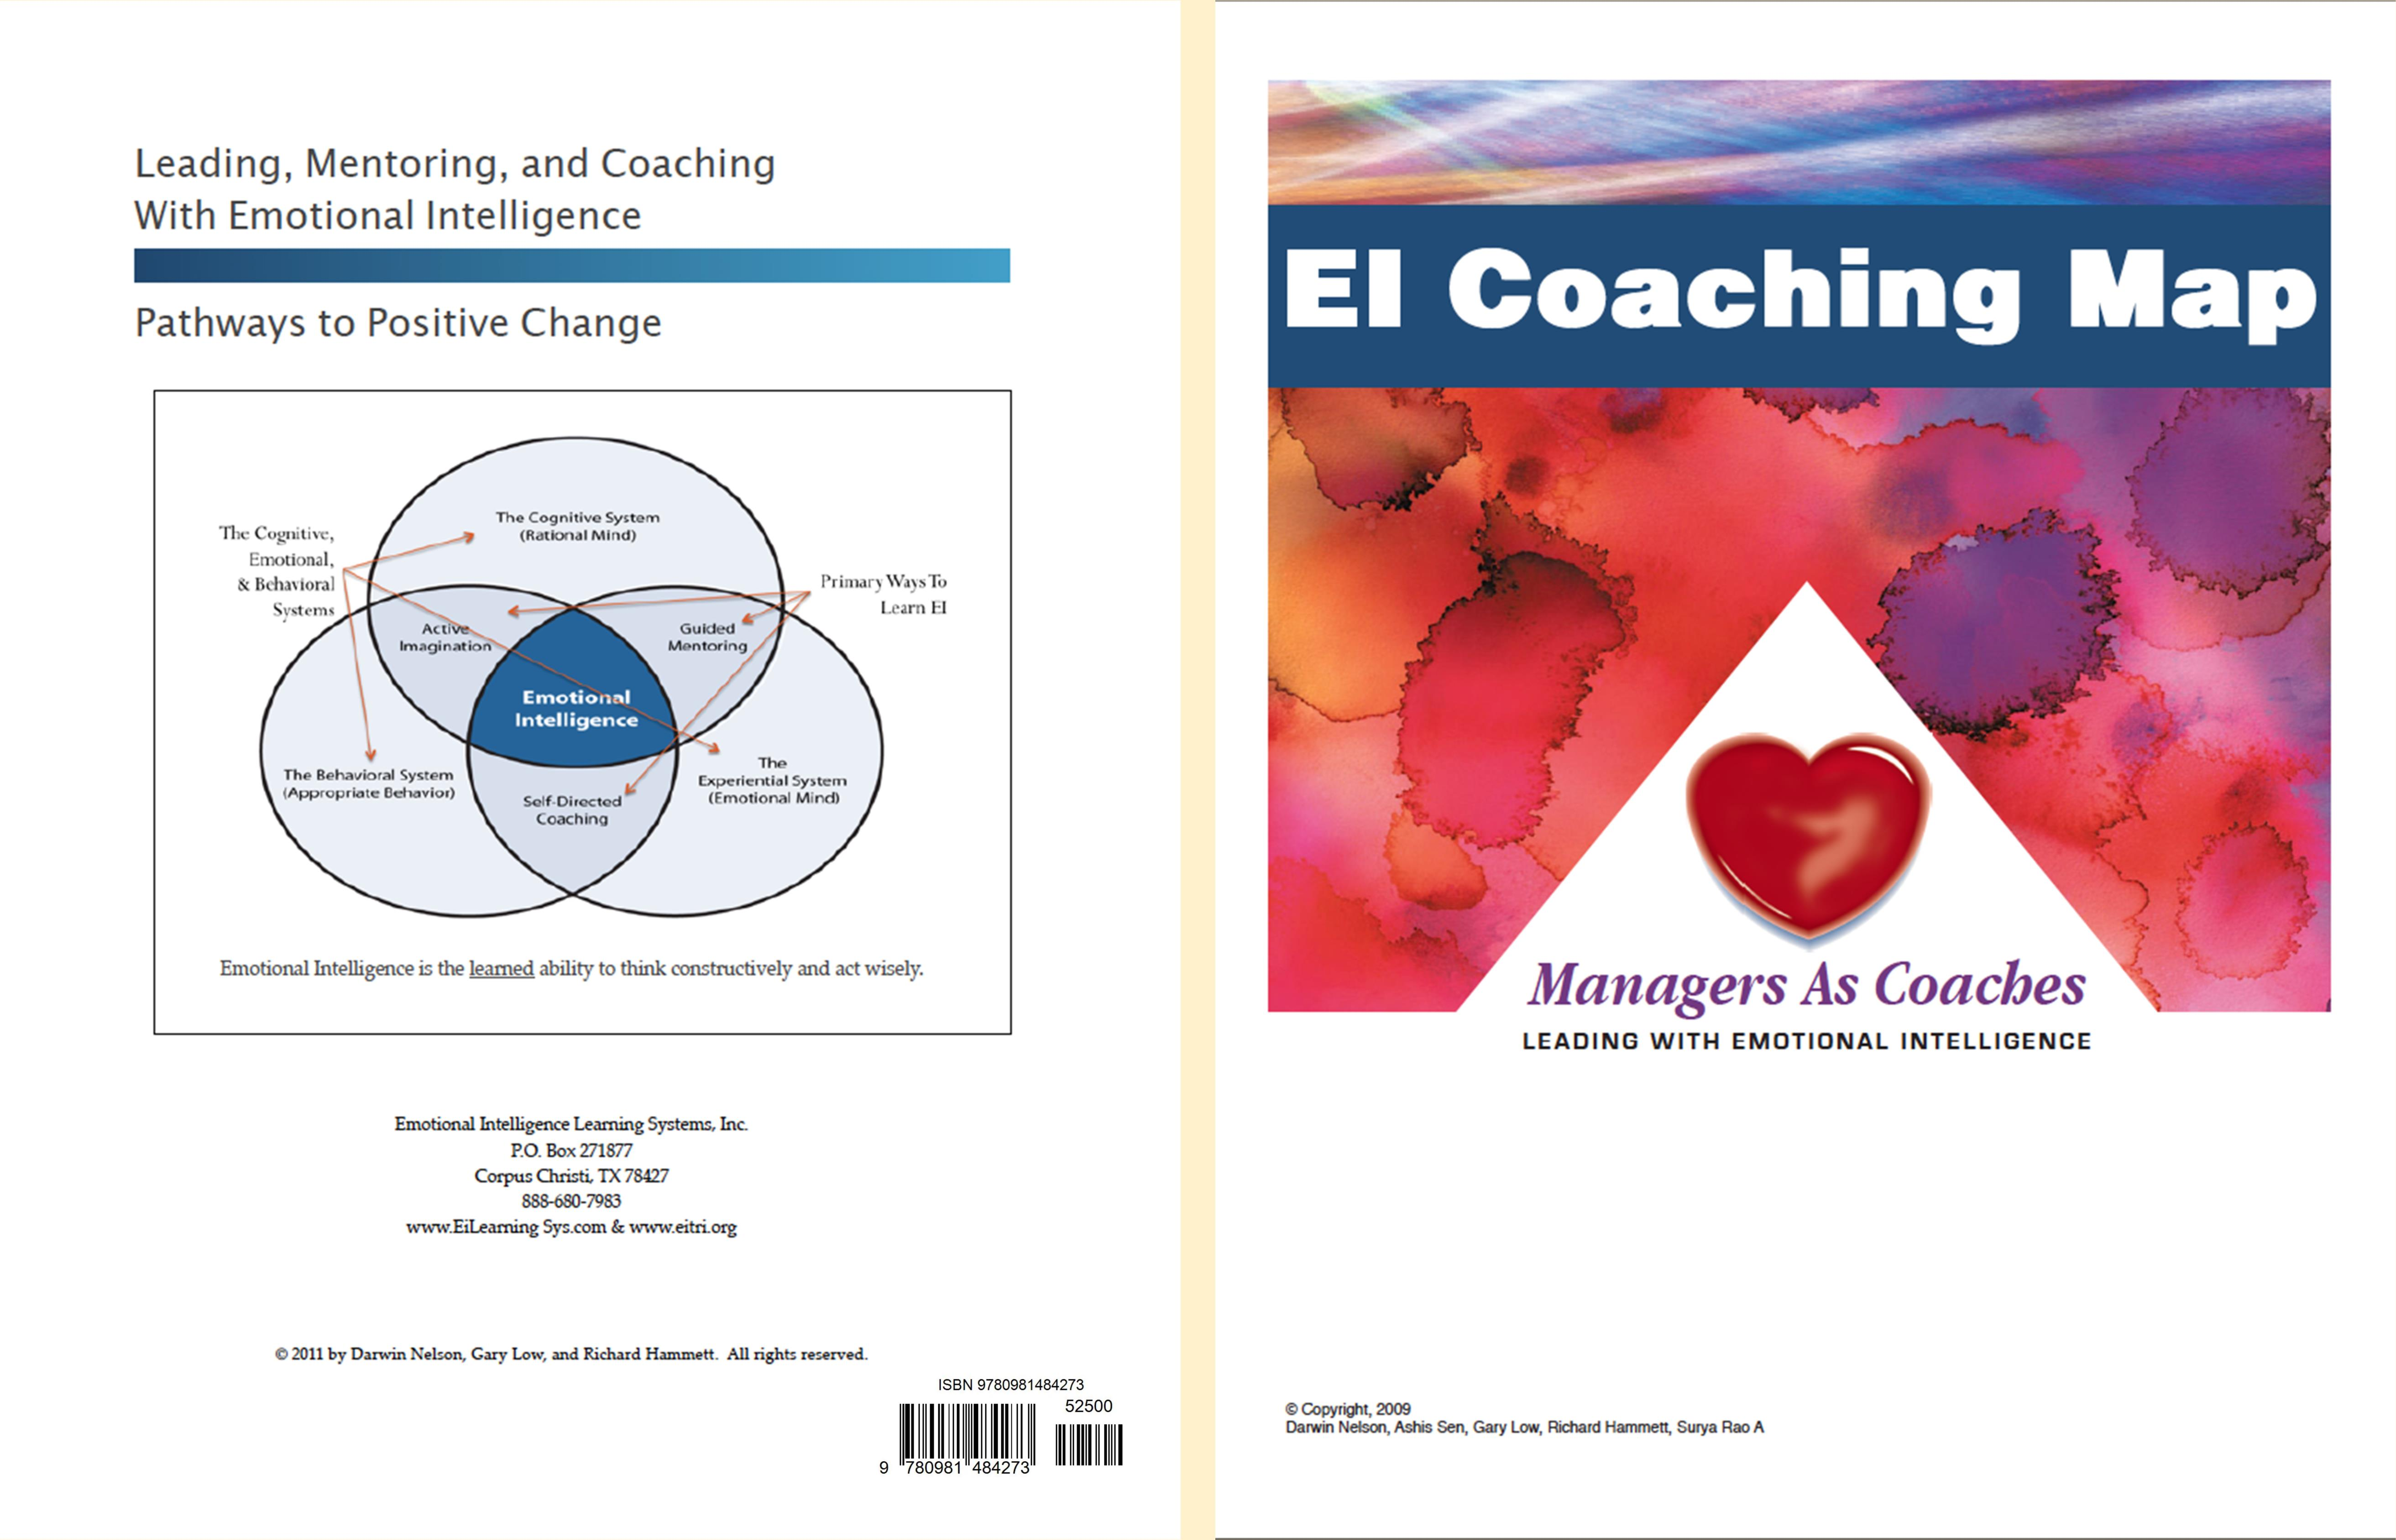 EI Coaching Map cover image